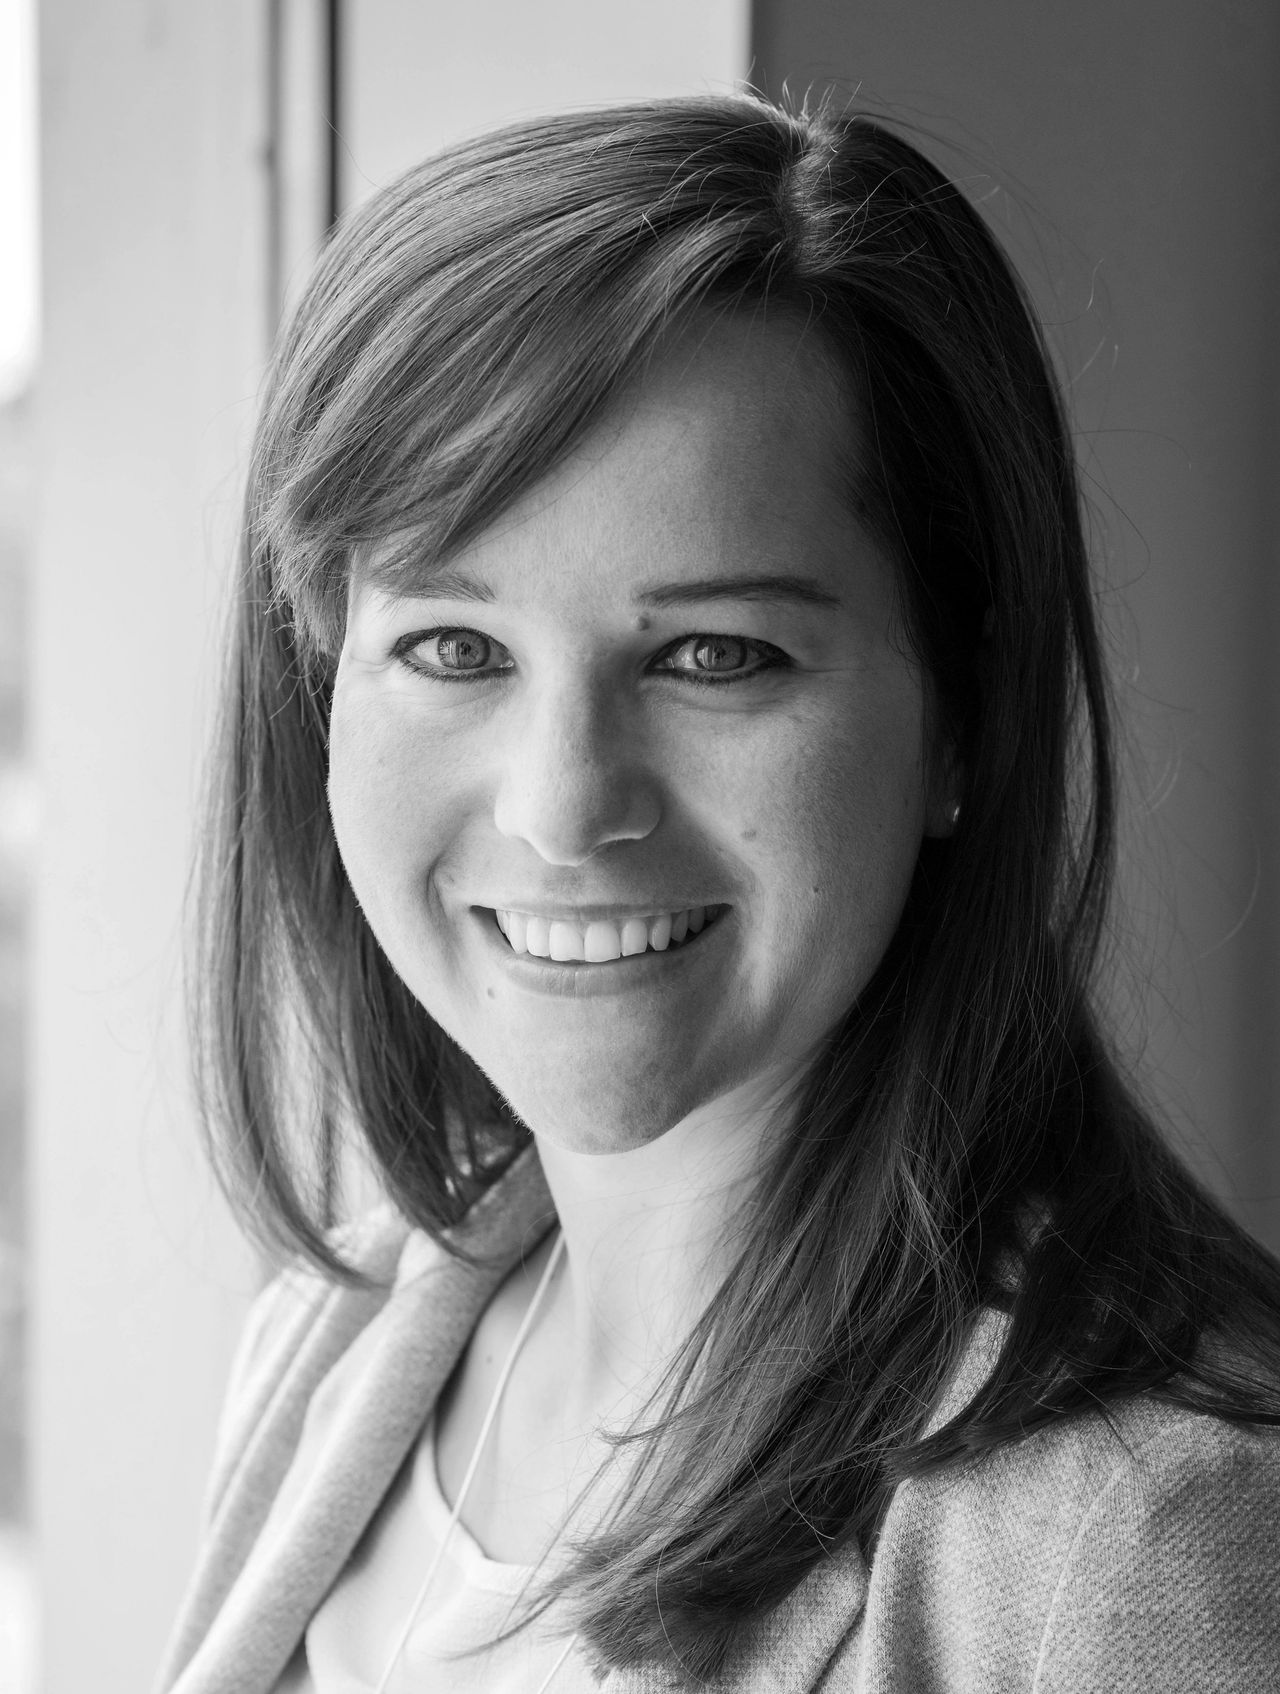 Meet the Successful Founder: Kate Bache